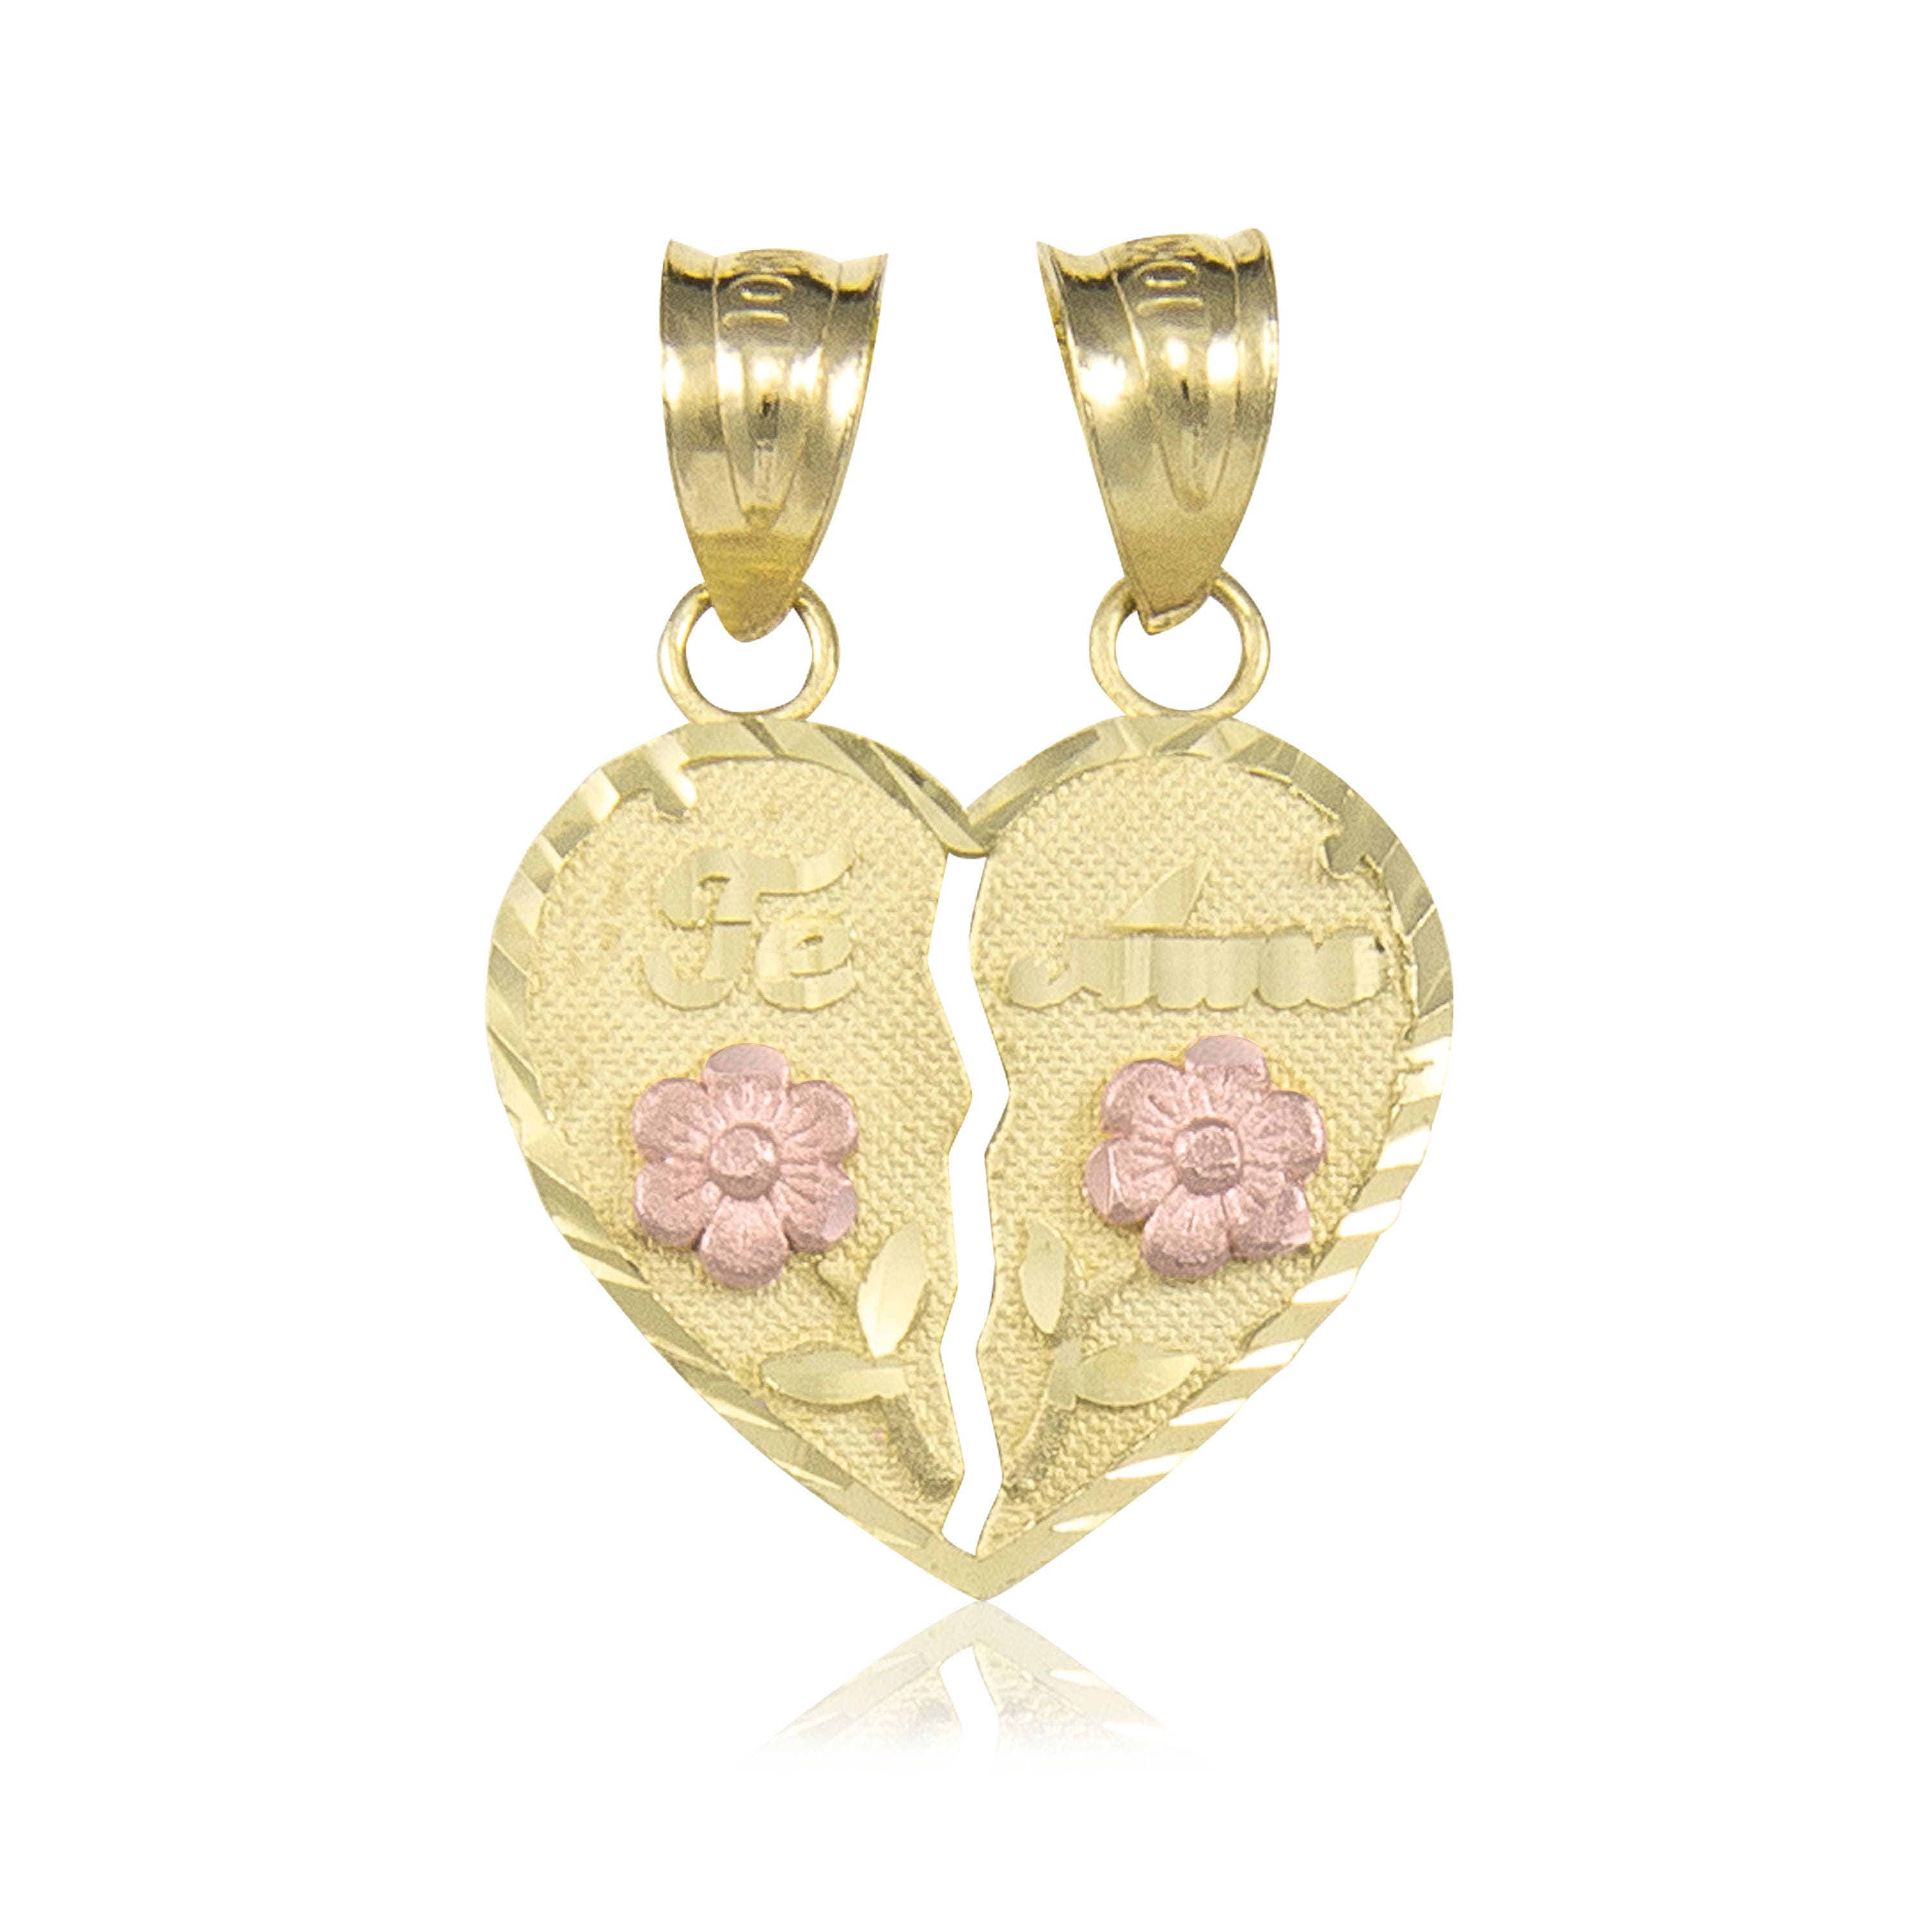 10k solid yellow rose gold te amo half heart pendant love flower 10k solid yellow rose gold te amo half heart pendant love flower necklace charm mozeypictures Images